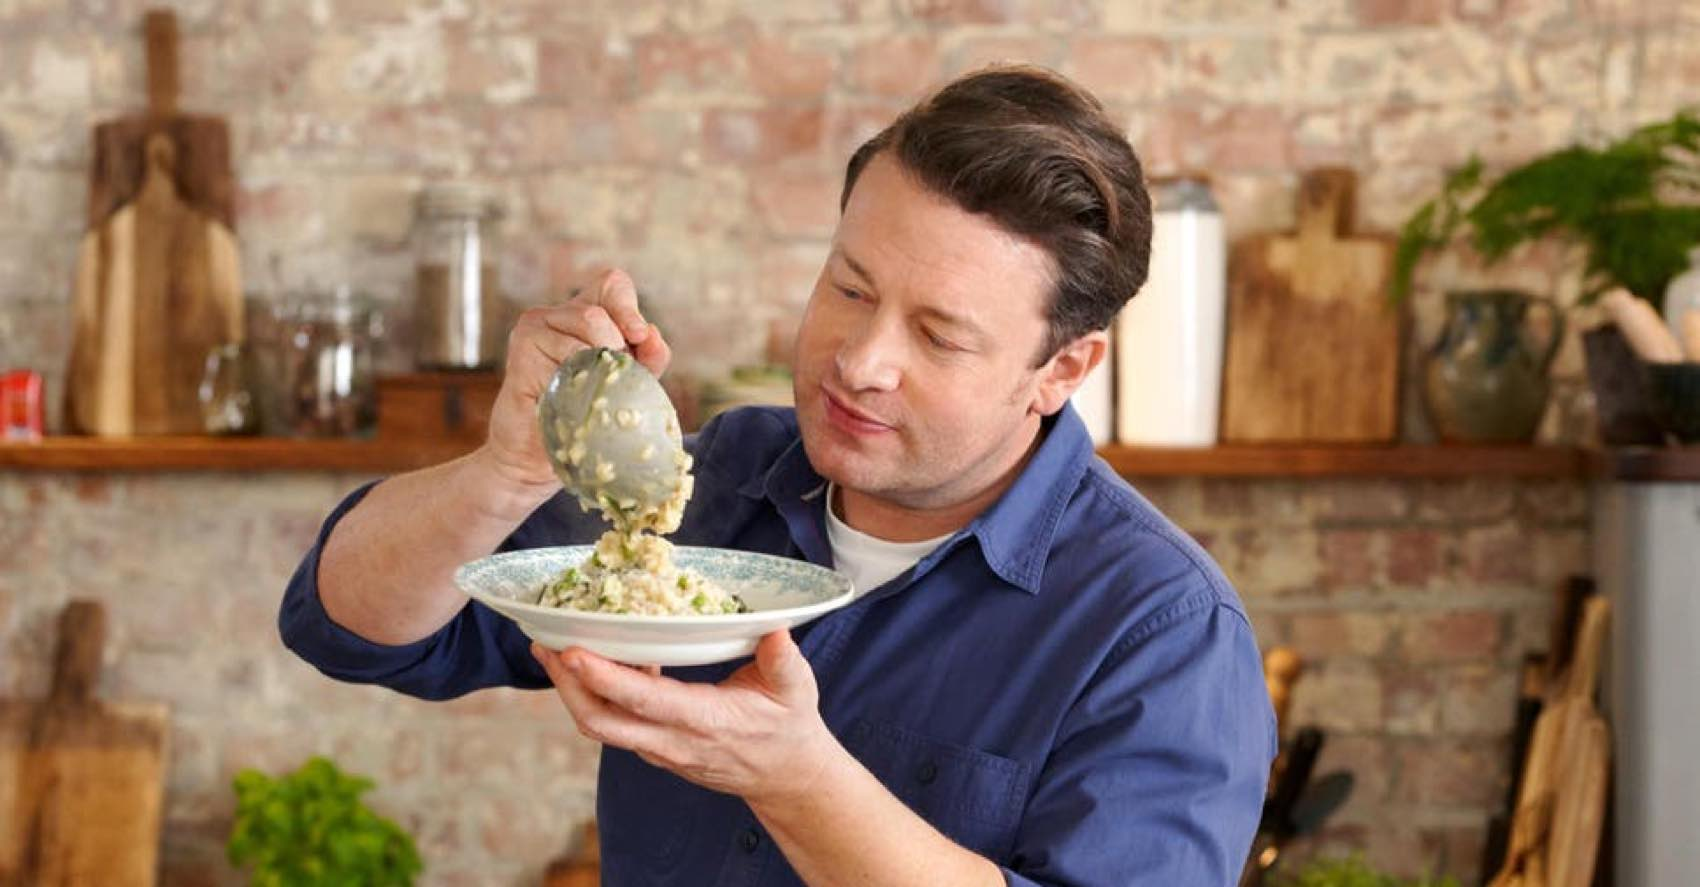 MY WAY: Read on and click for the best risotto made of chef Jamie Oliver